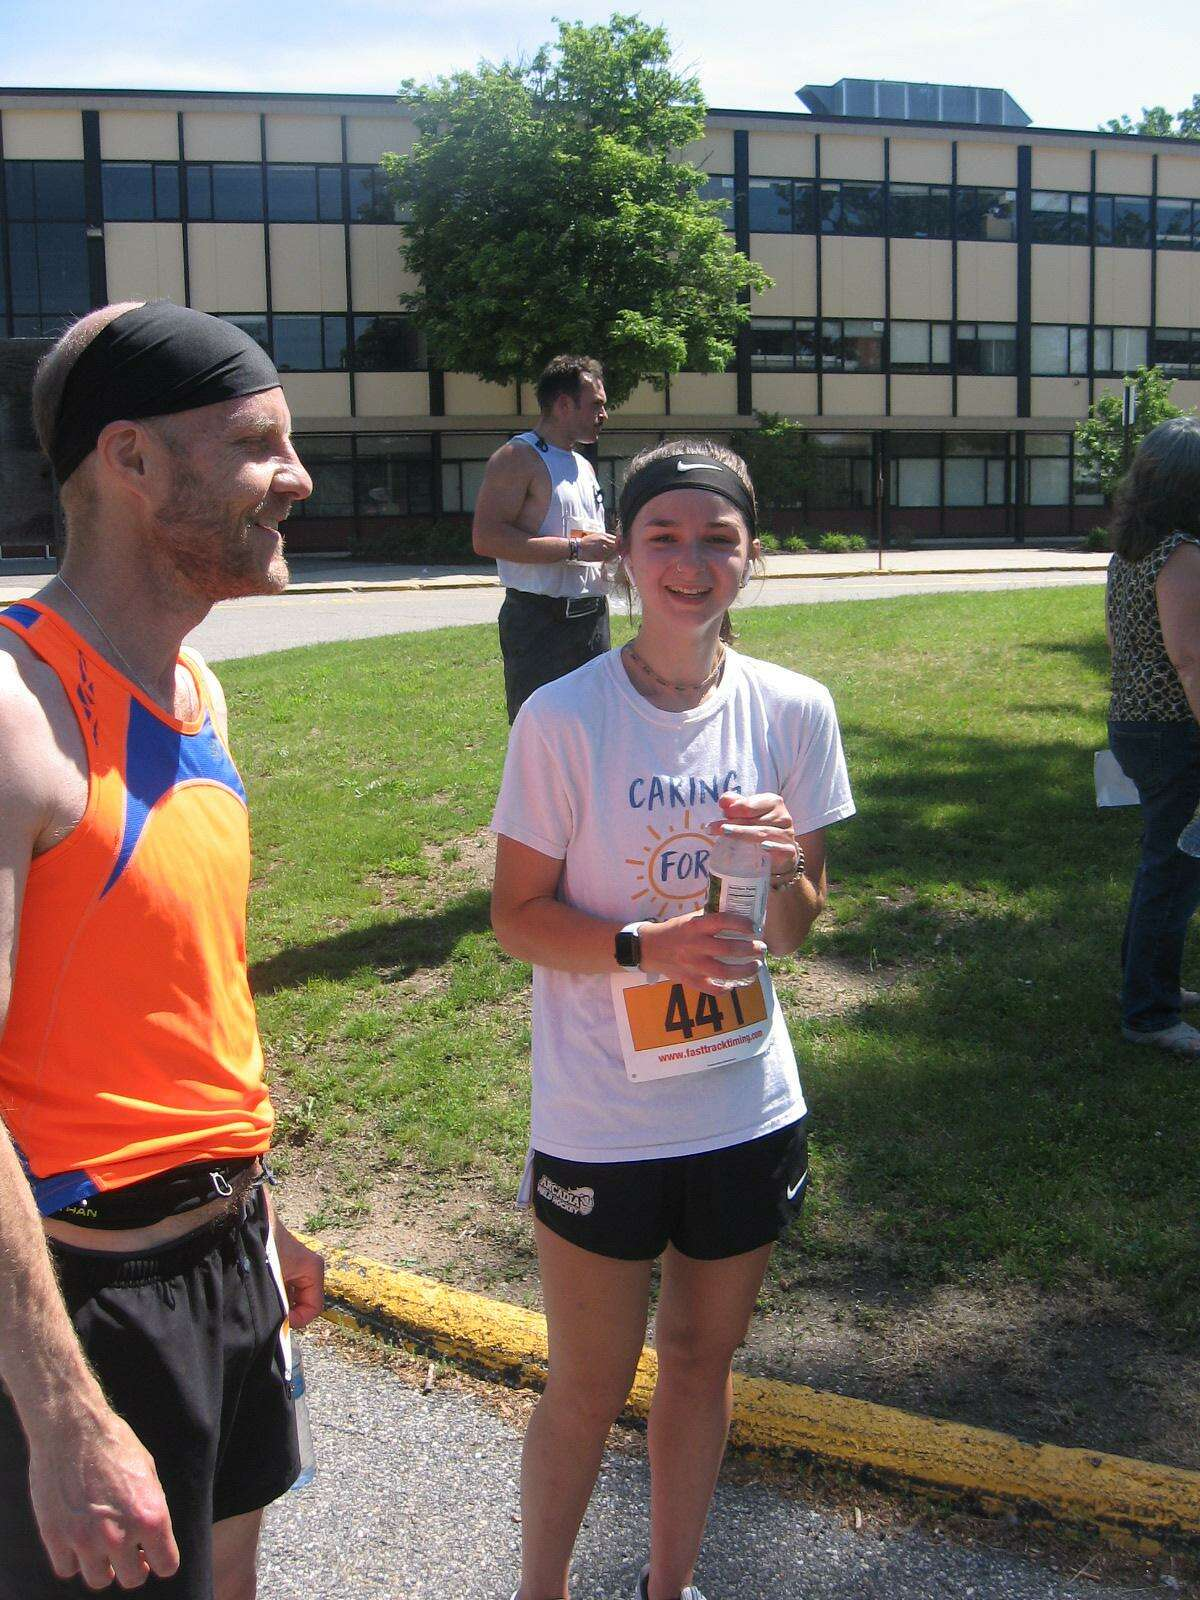 Raider Run 5K Run/Walk, held by the Torrington High School Alumni Club, was held at the high school last weekend. The first female finisher, Sophia Demichiel, center, chats with a friend after the race.